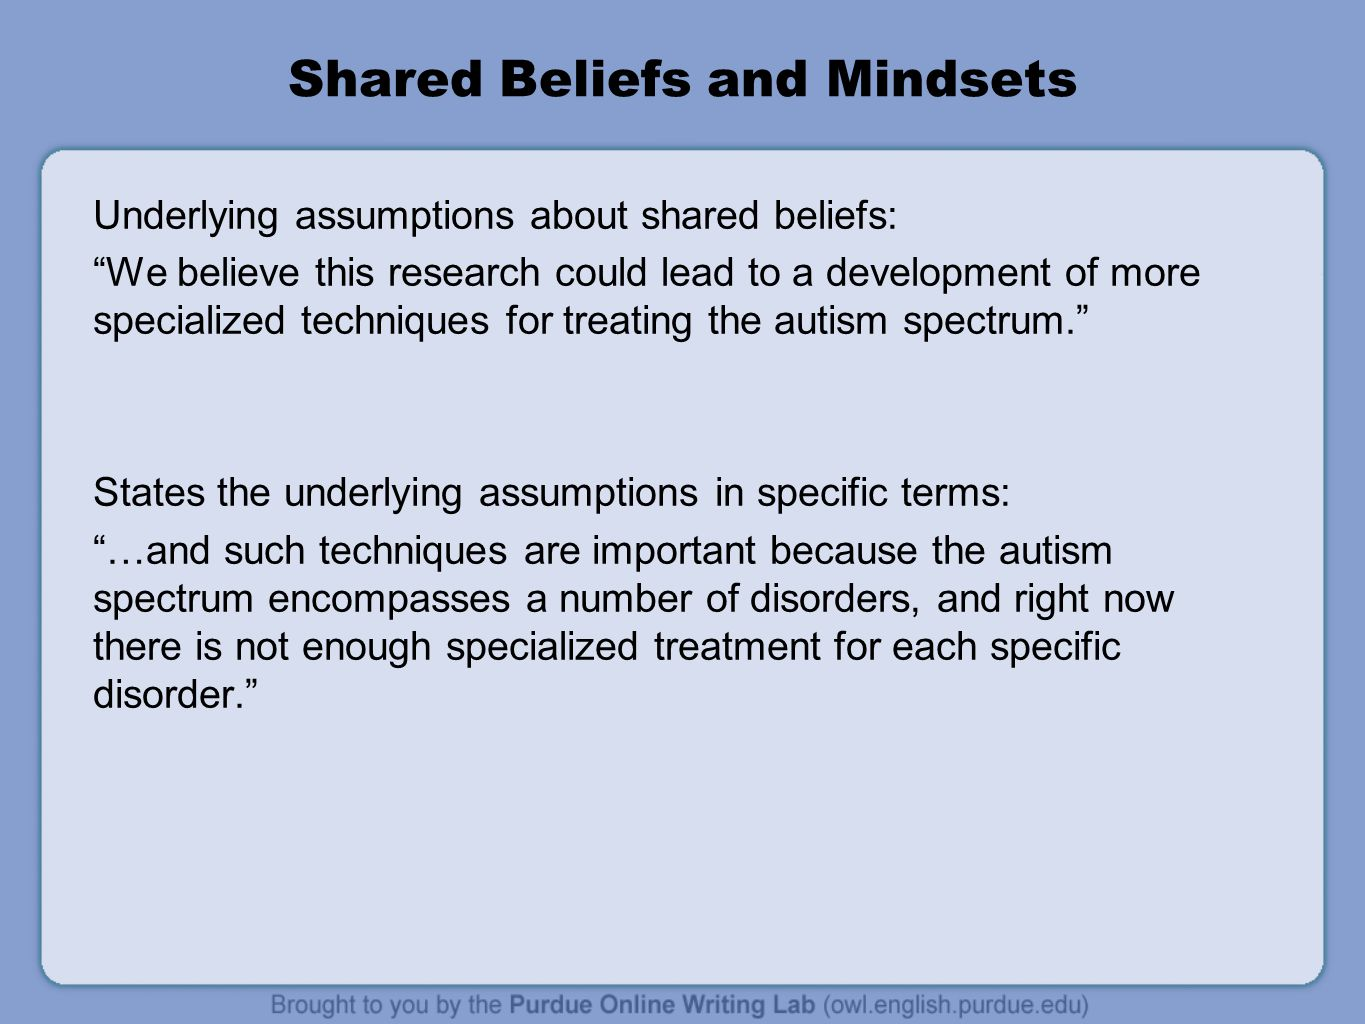 Shared Beliefs and Mindsets Underlying assumptions about shared beliefs: We believe this research could lead to a development of more specialized techniques for treating the autism spectrum. States the underlying assumptions in specific terms: …and such techniques are important because the autism spectrum encompasses a number of disorders, and right now there is not enough specialized treatment for each specific disorder.